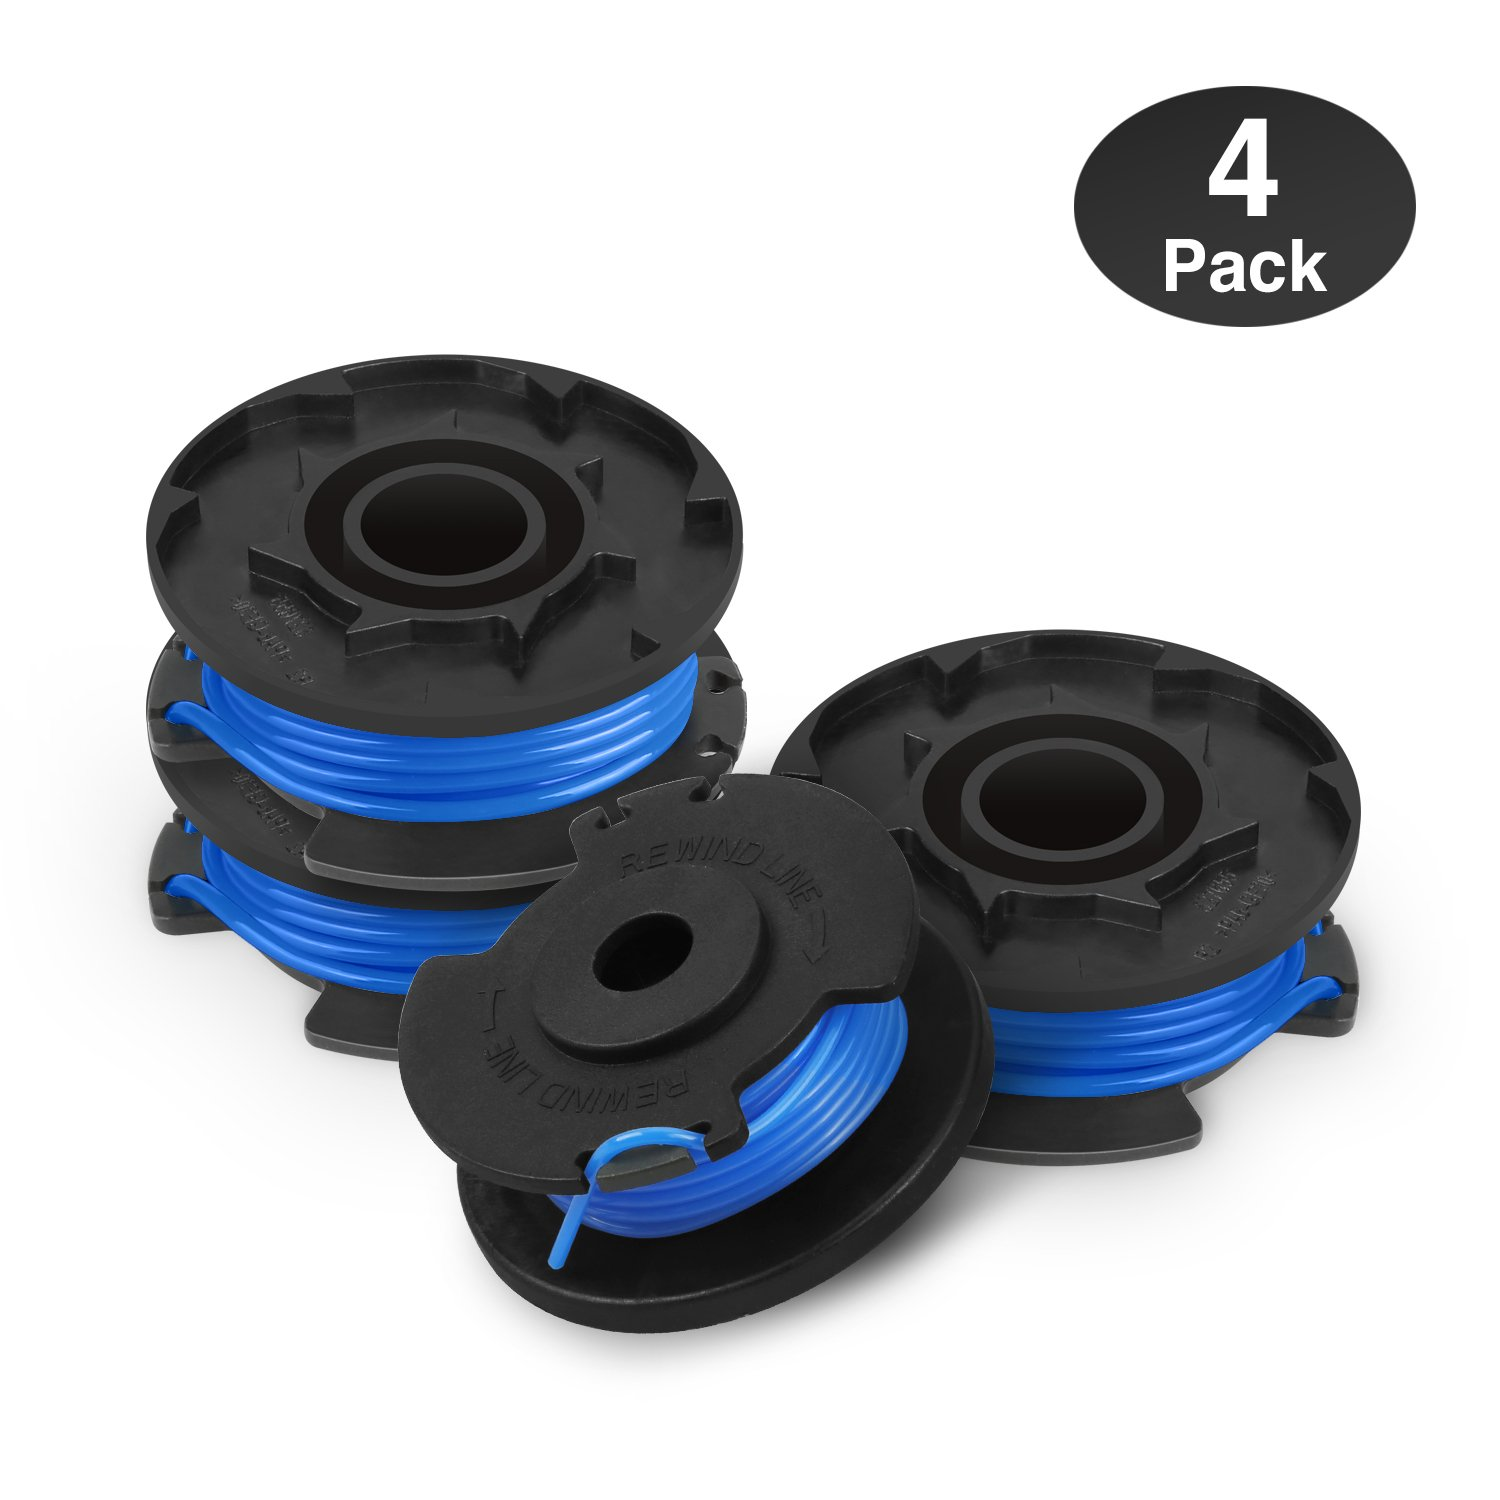 "Eventronic Line String Trimmer Replacement Spool for Ryobi, 0.065"" Autofeed Replacement Spools for Ryobi 18V, 24V, and 40V Cordless Trimmers - 4 Pack"